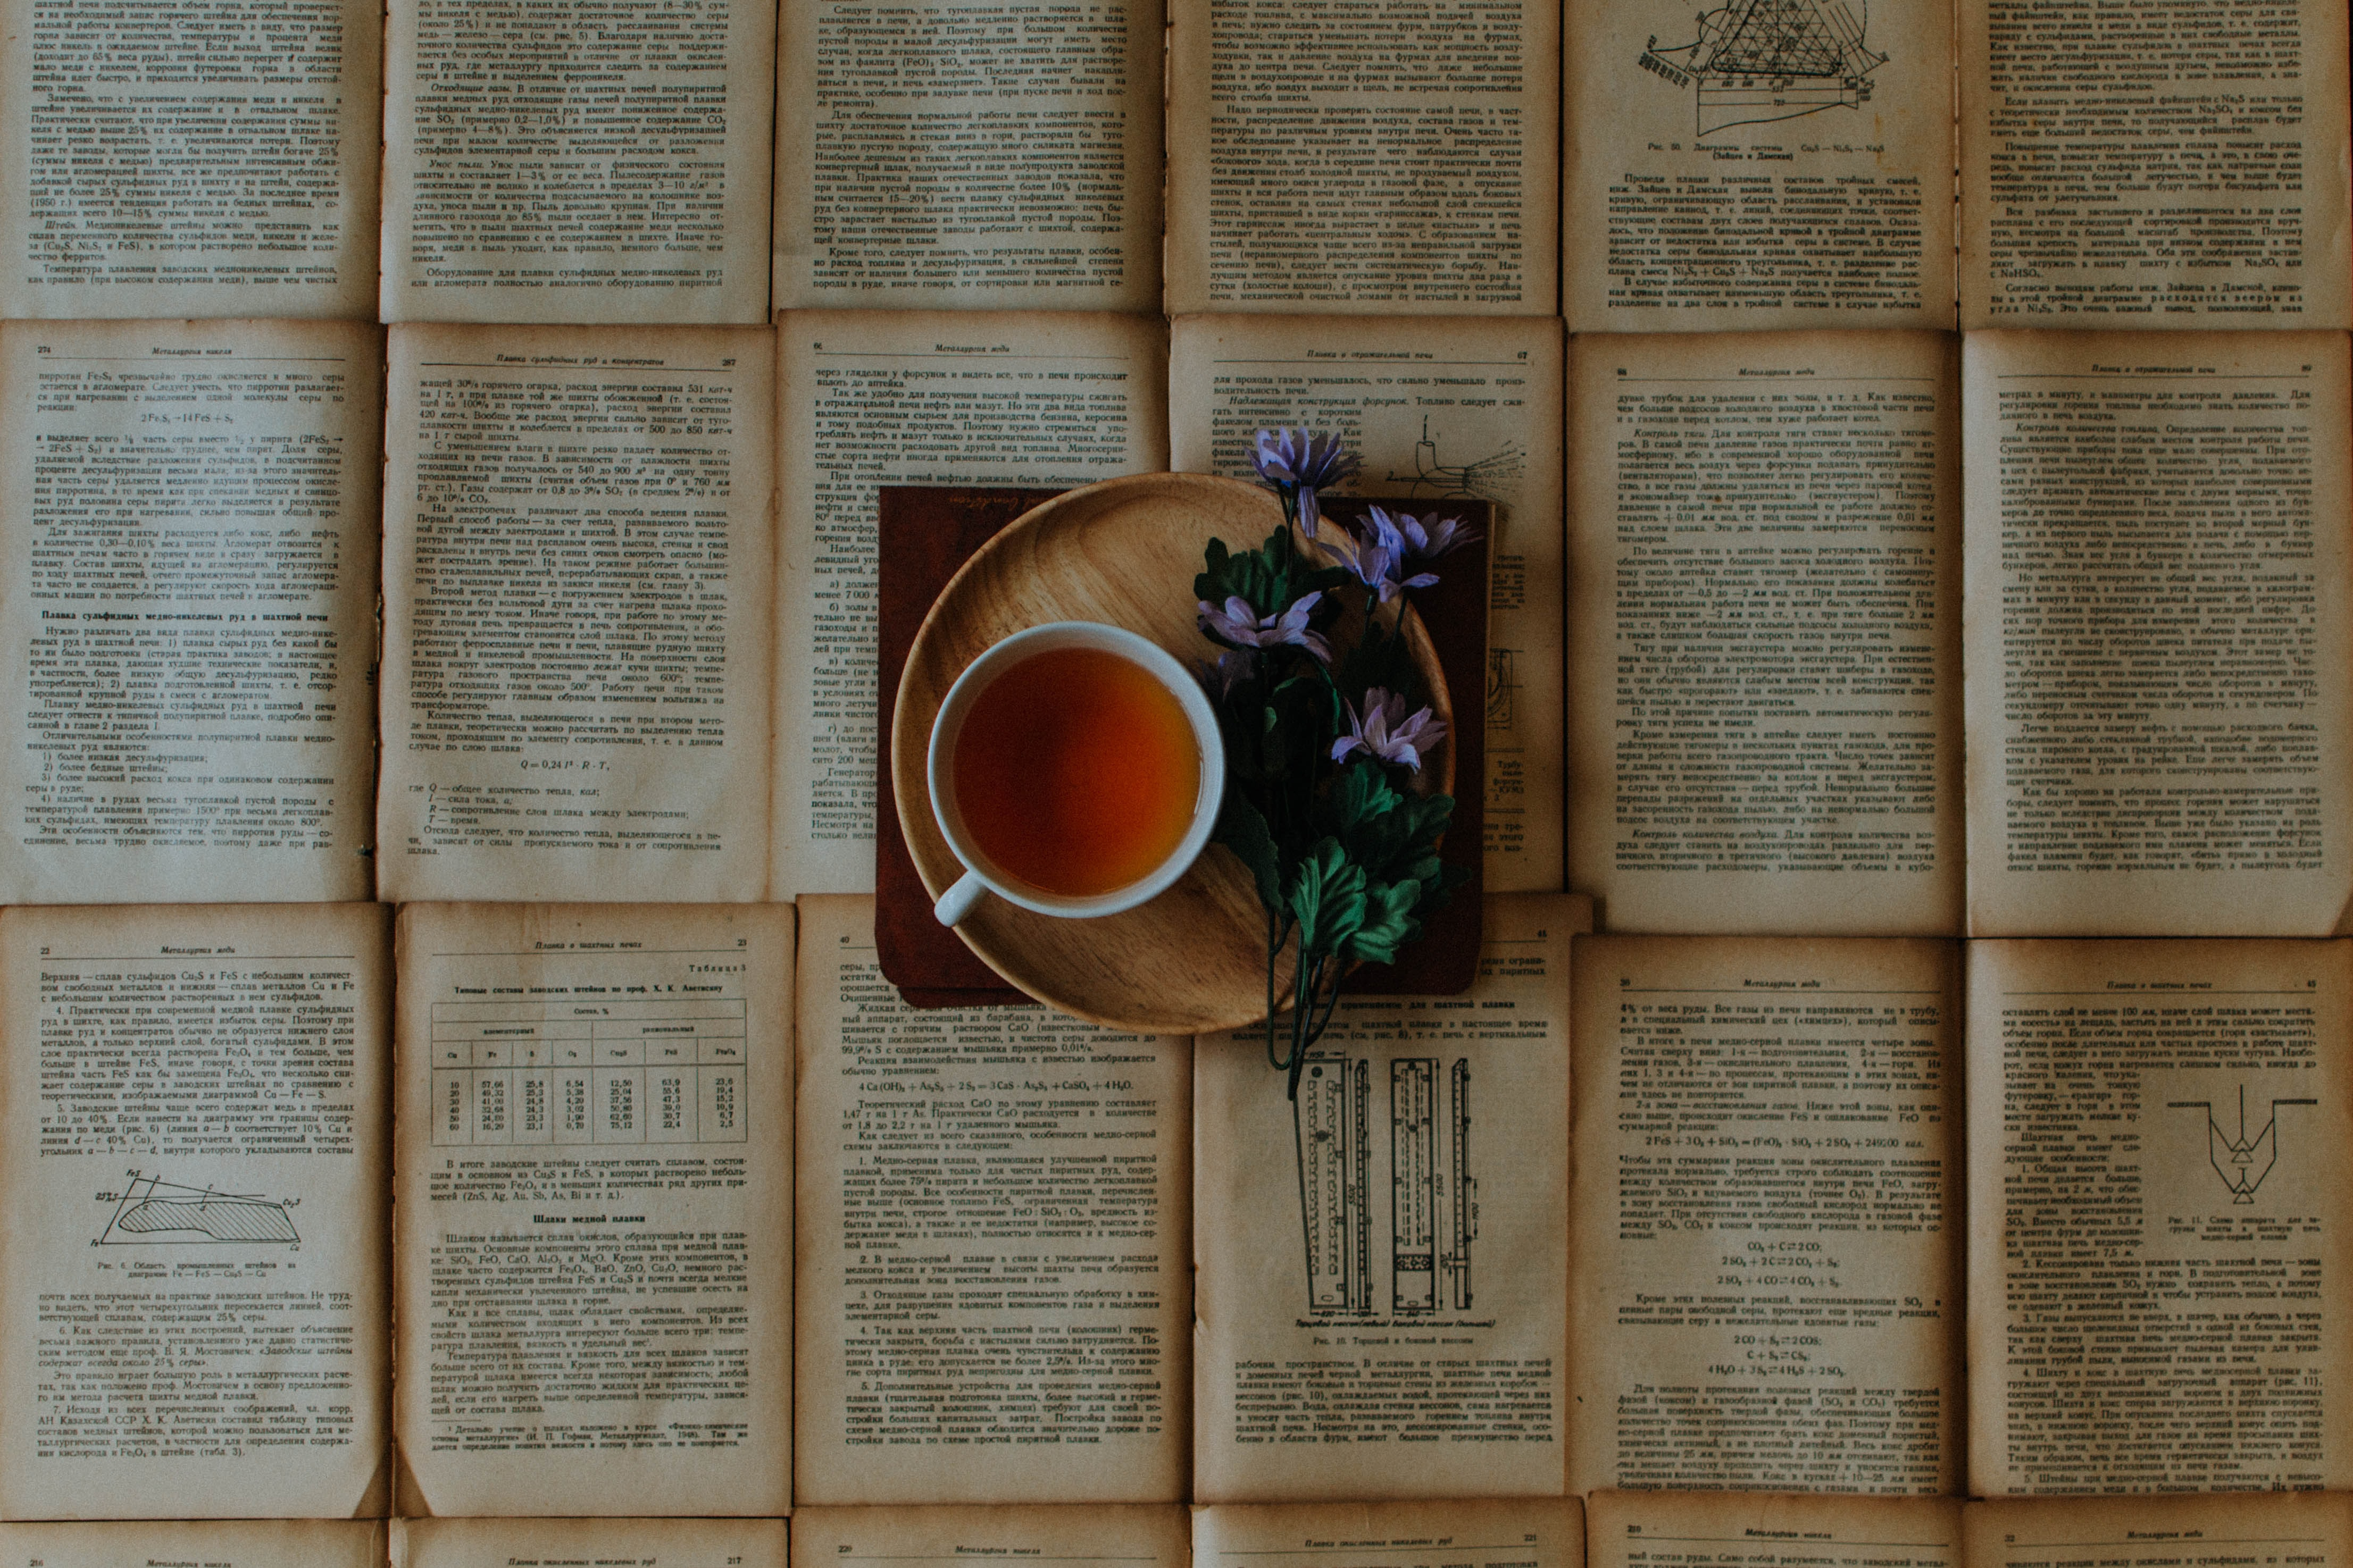 cup of coffee beside purple flowers on top of book